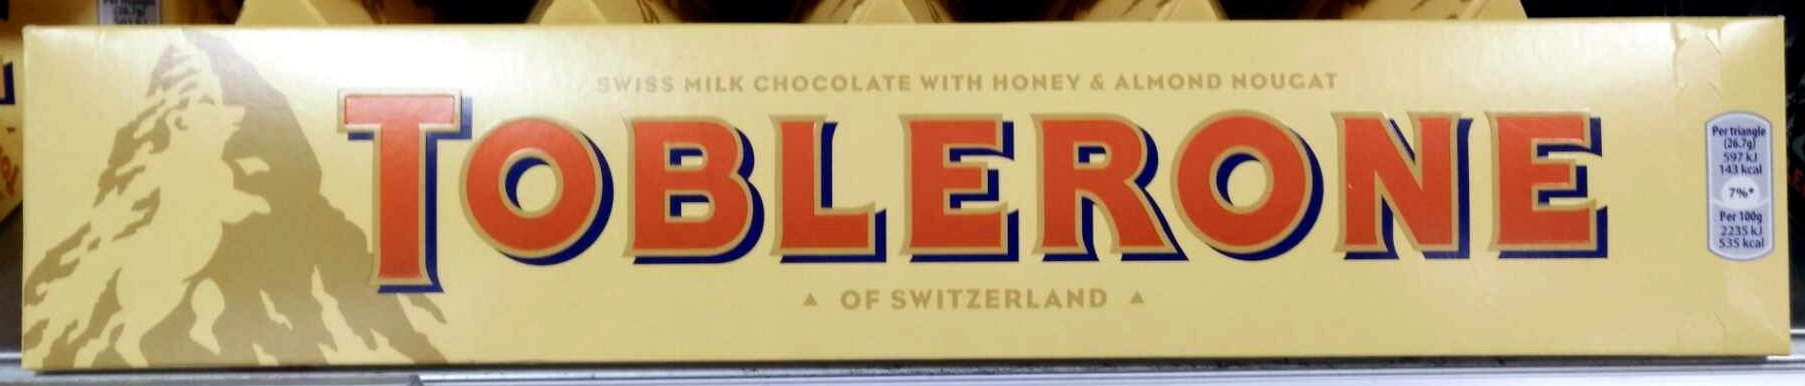 Toblerone - Product